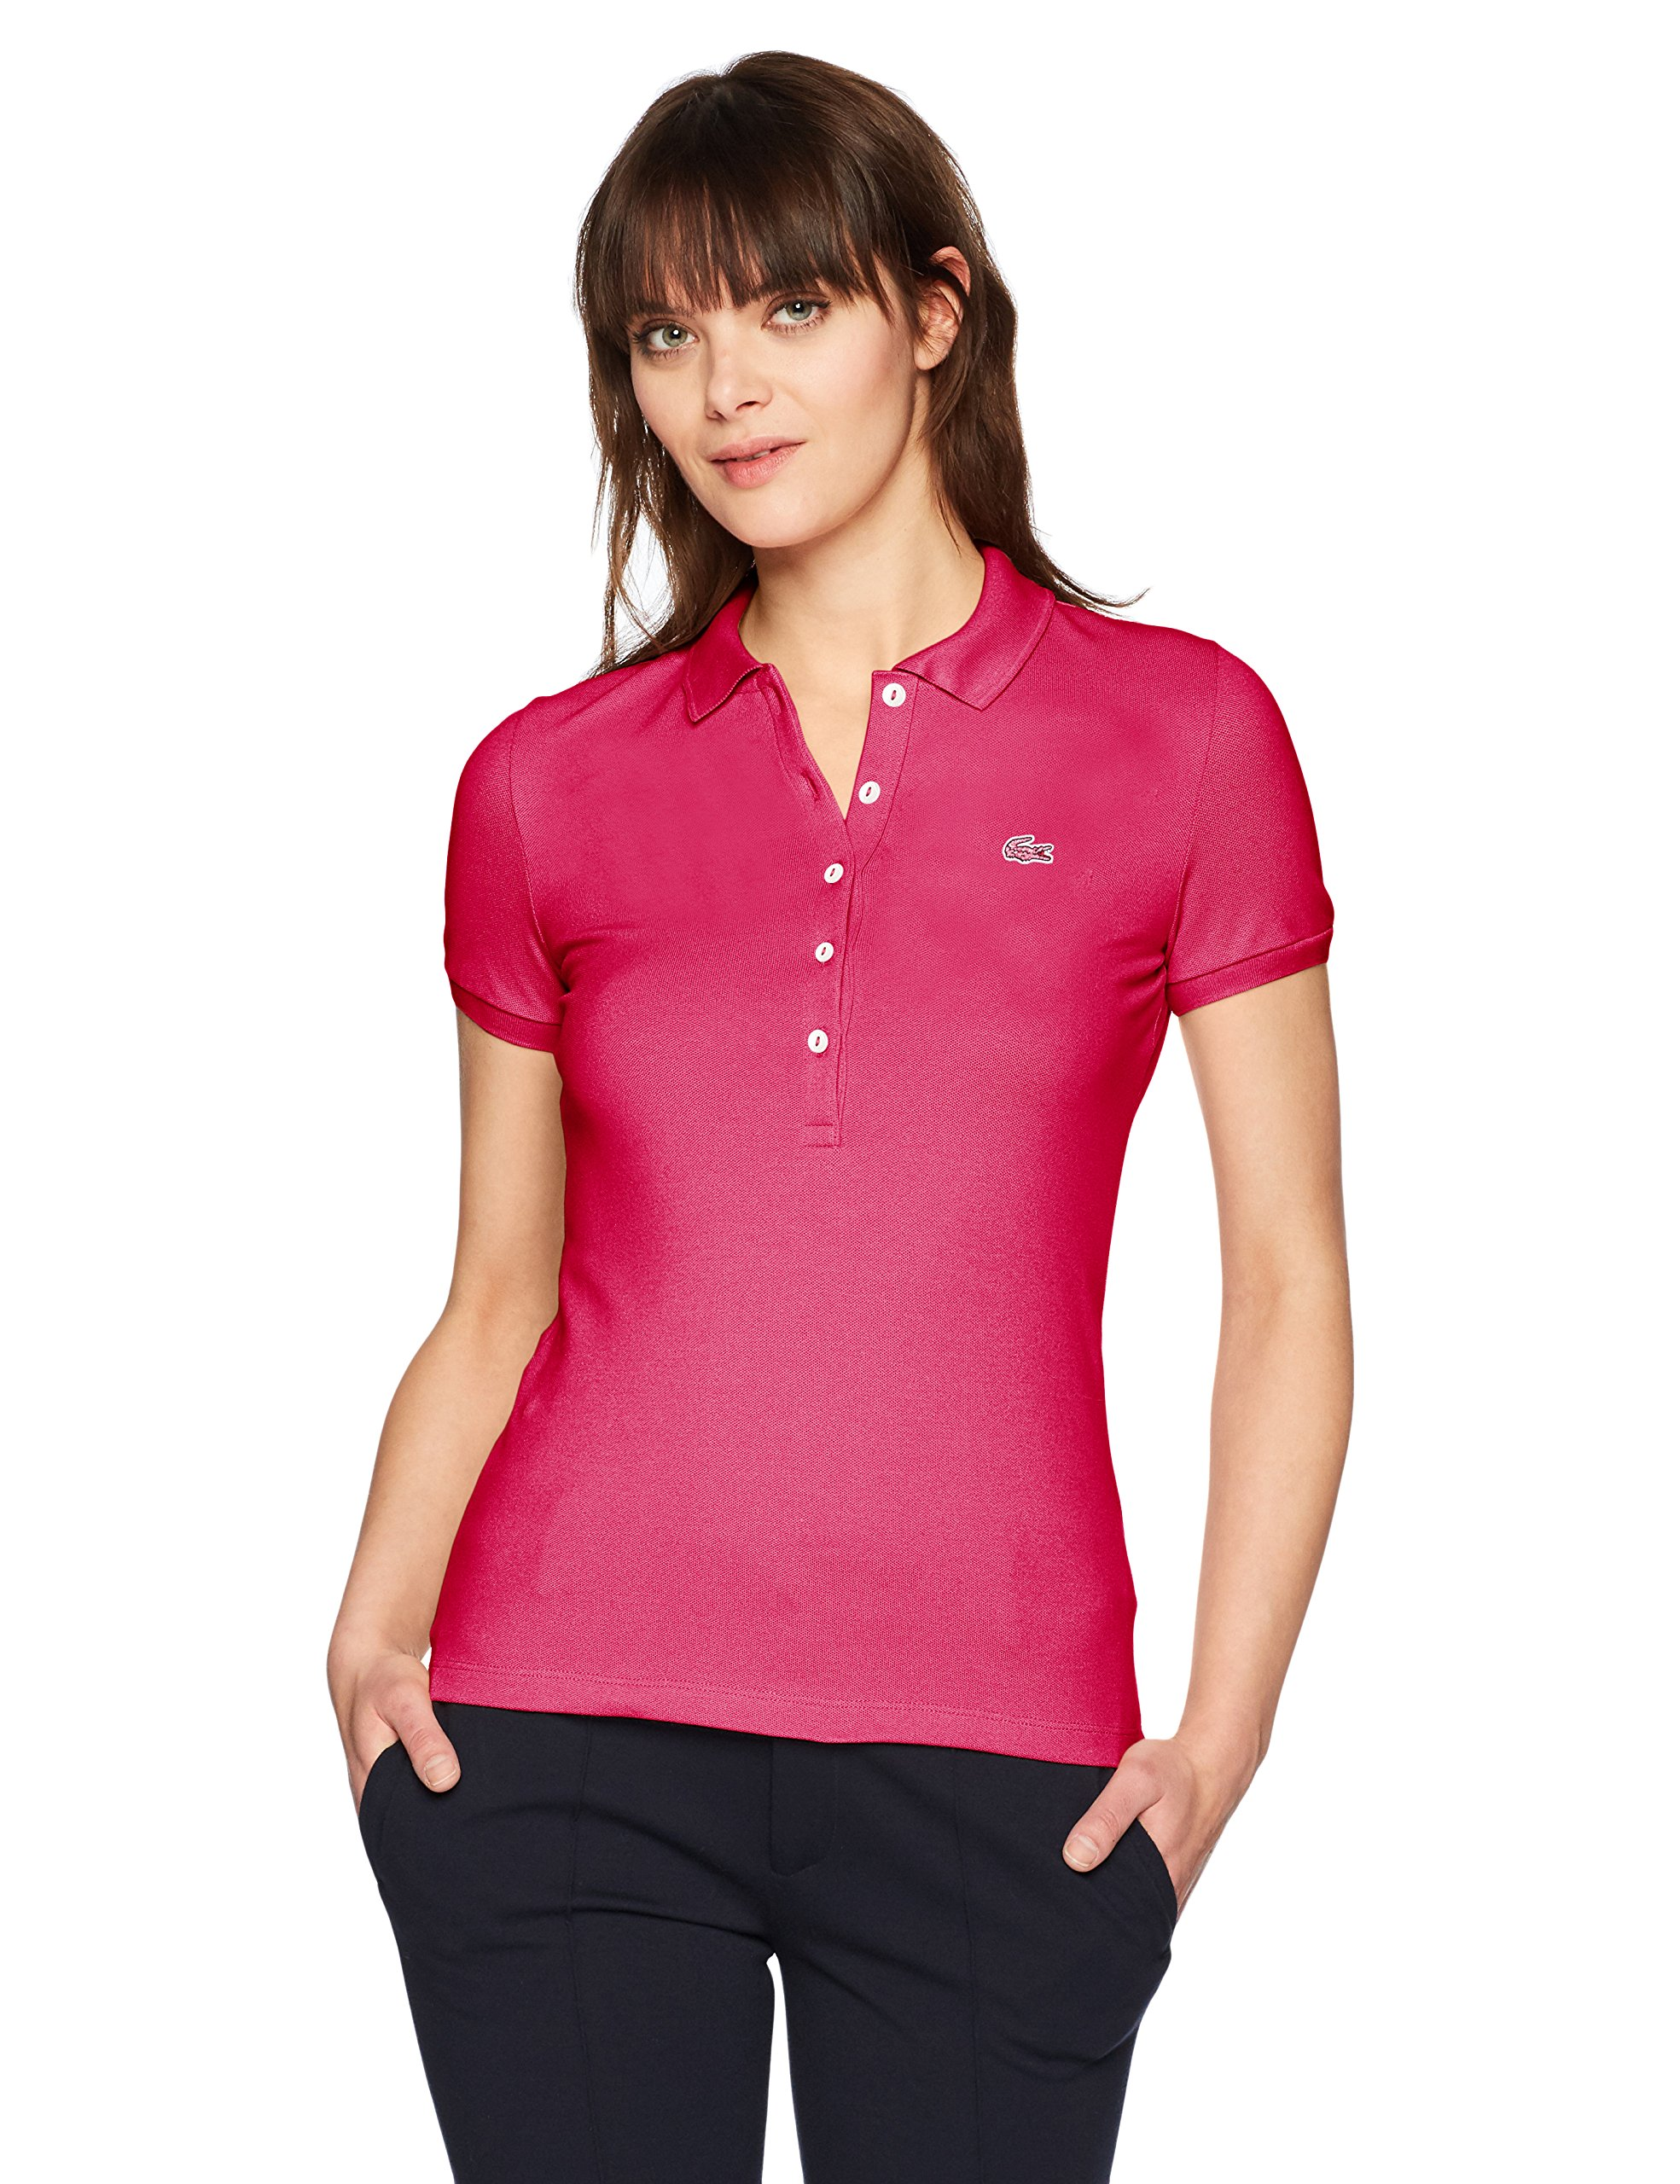 Lacoste Women's Classic Short Sleeve Slim Fit Stretch Pique Polo, PF7845, Stacy Chine 6